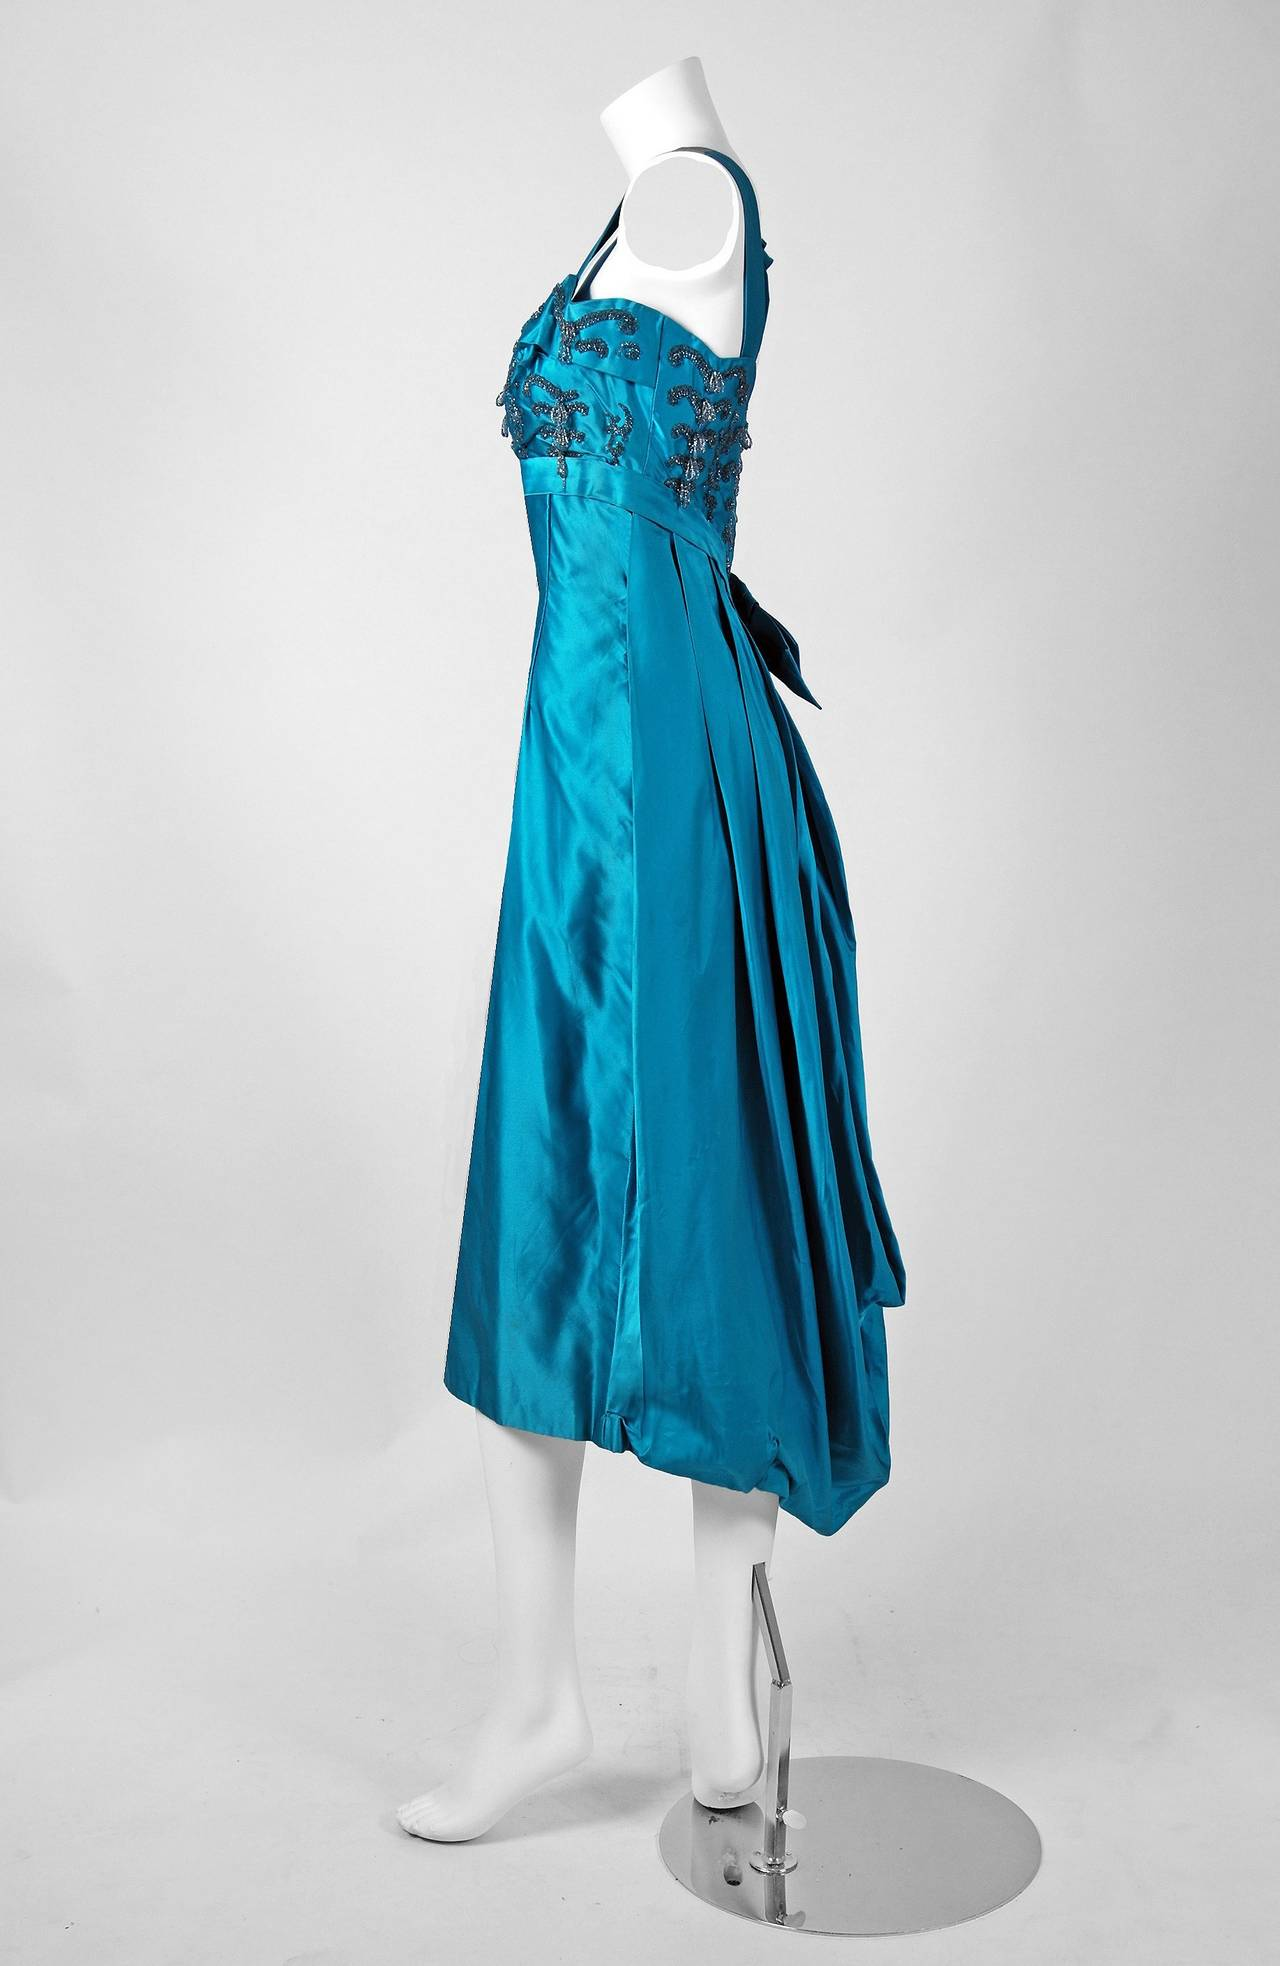 Alluring Ceil Chapman cocktail dress in the most breathtaking turquoise-blue color! I adore the scalloped, beaded shelf-bust boned bodice with adorable shoulder-bow. The unique pencil-skirt has a dramatic back draped-bubble construction which gives